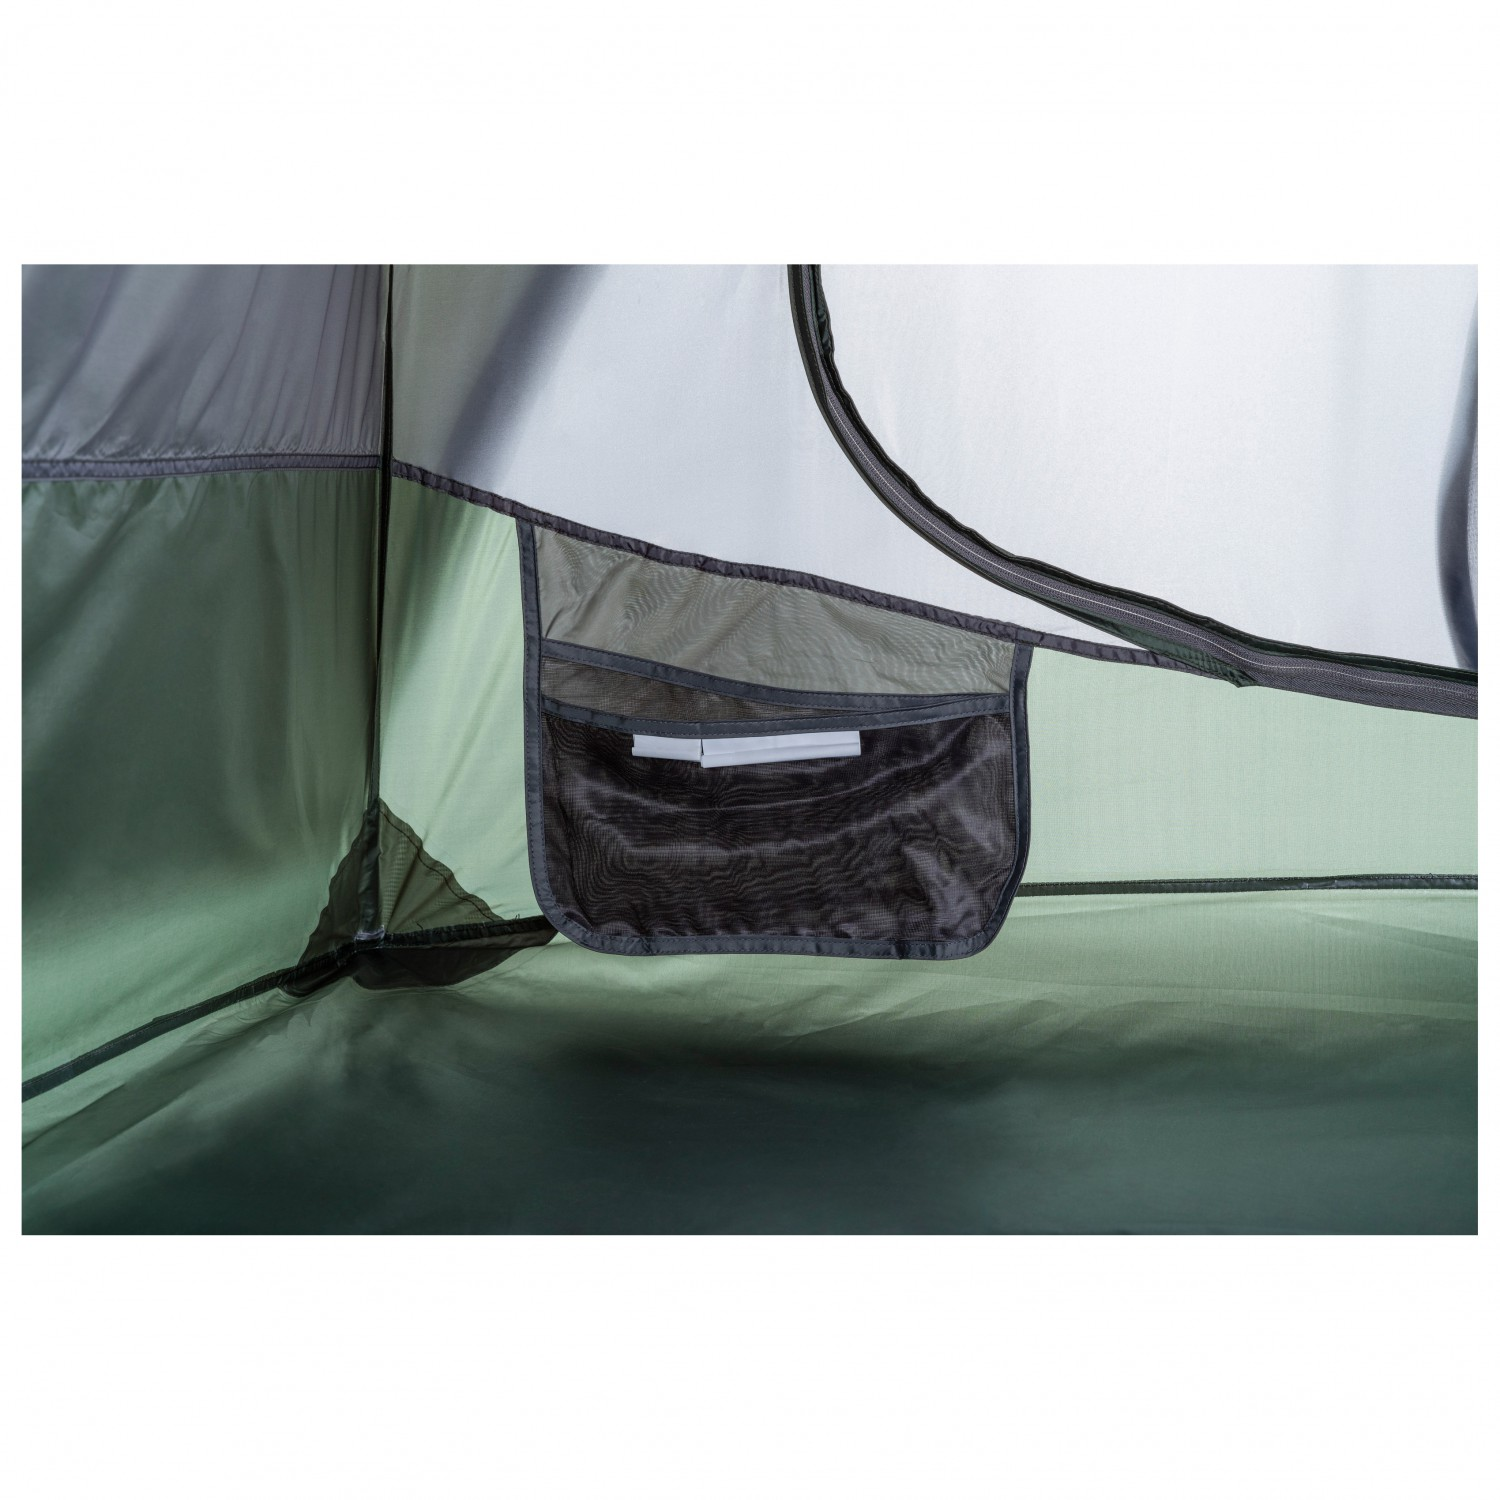 ... Marmot - Limelight 2P - 2-man tent ...  sc 1 th 225 & Marmot Limelight 2P - 2-Man Tent | Free UK Delivery | Alpinetrek.co.uk